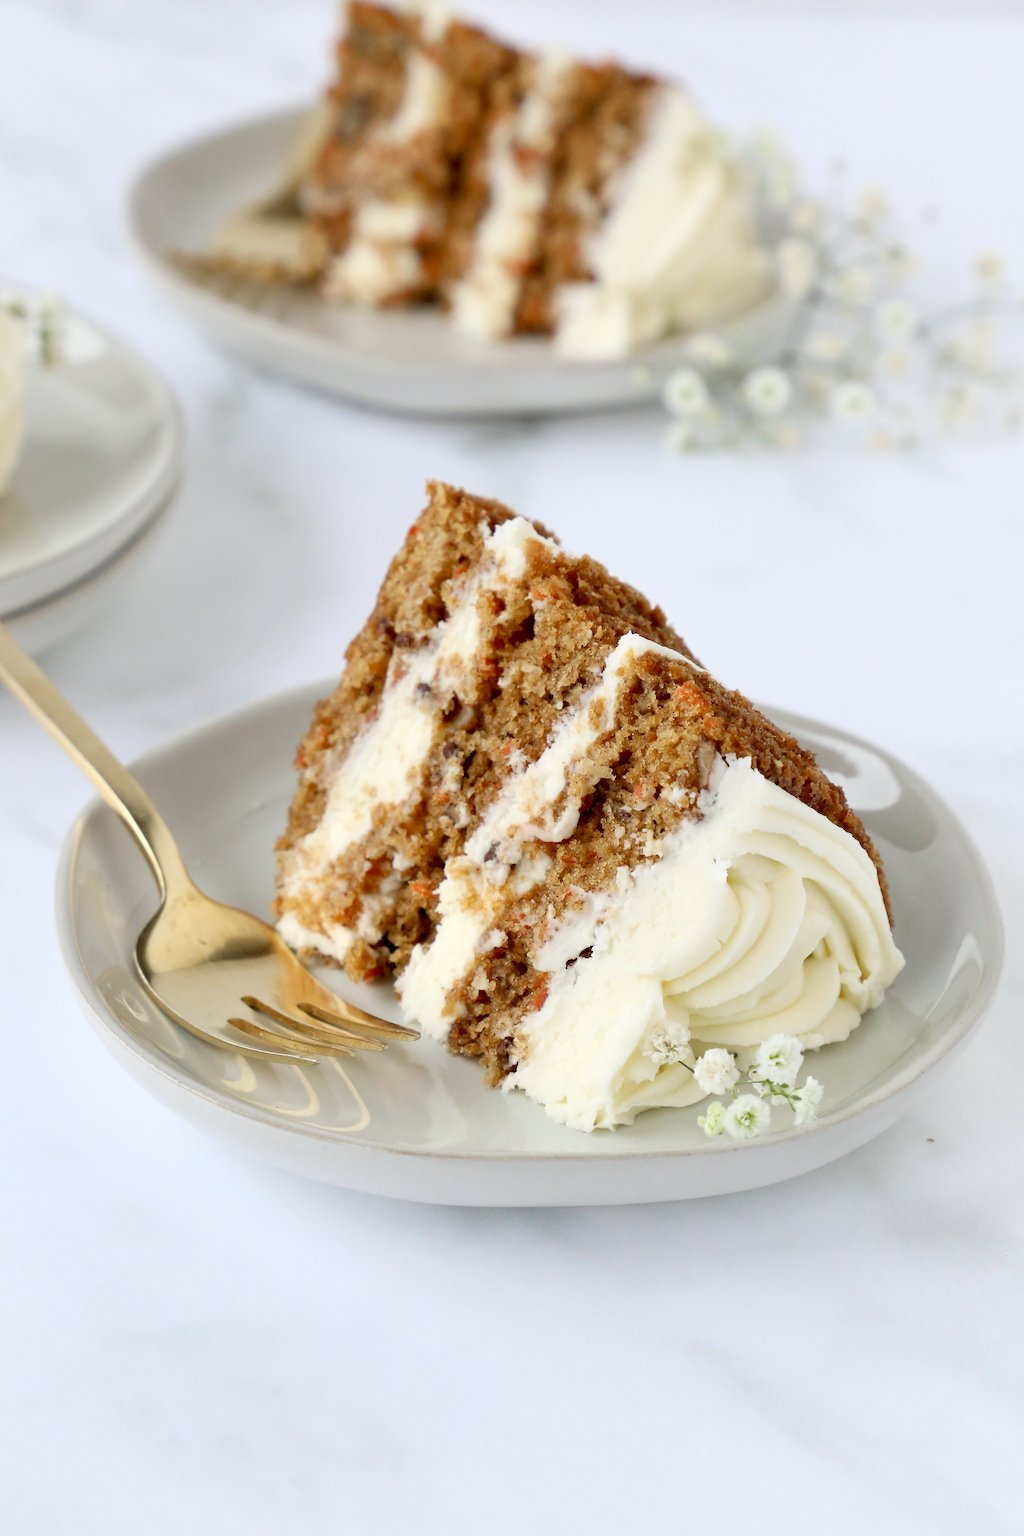 a slice of cake on a plate with a fork